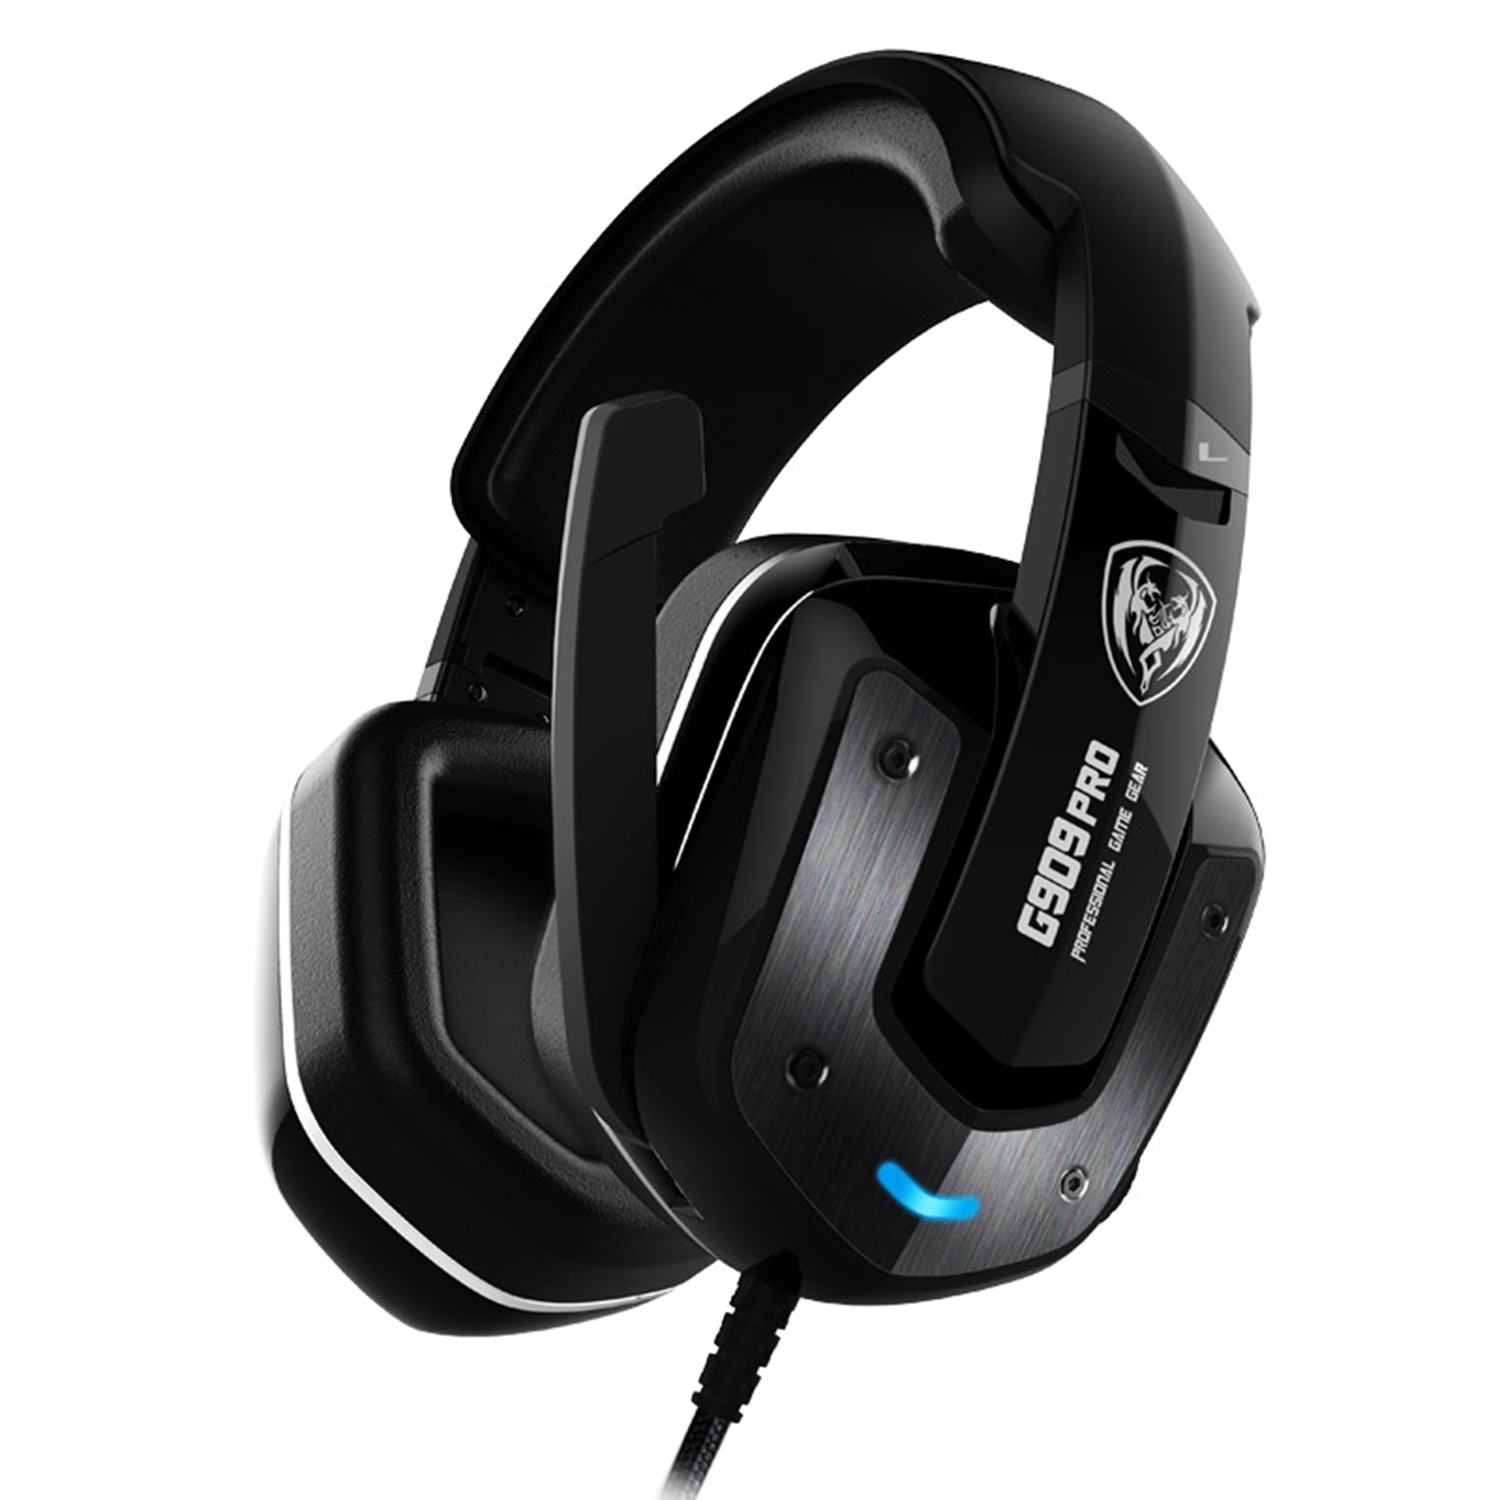 SOMIC G909PRO 7.1 Sound Gaming Headphone Stereo Bass Gaming Headset with Mic Noise Cancelling Voice control for PC GAME PLAYER